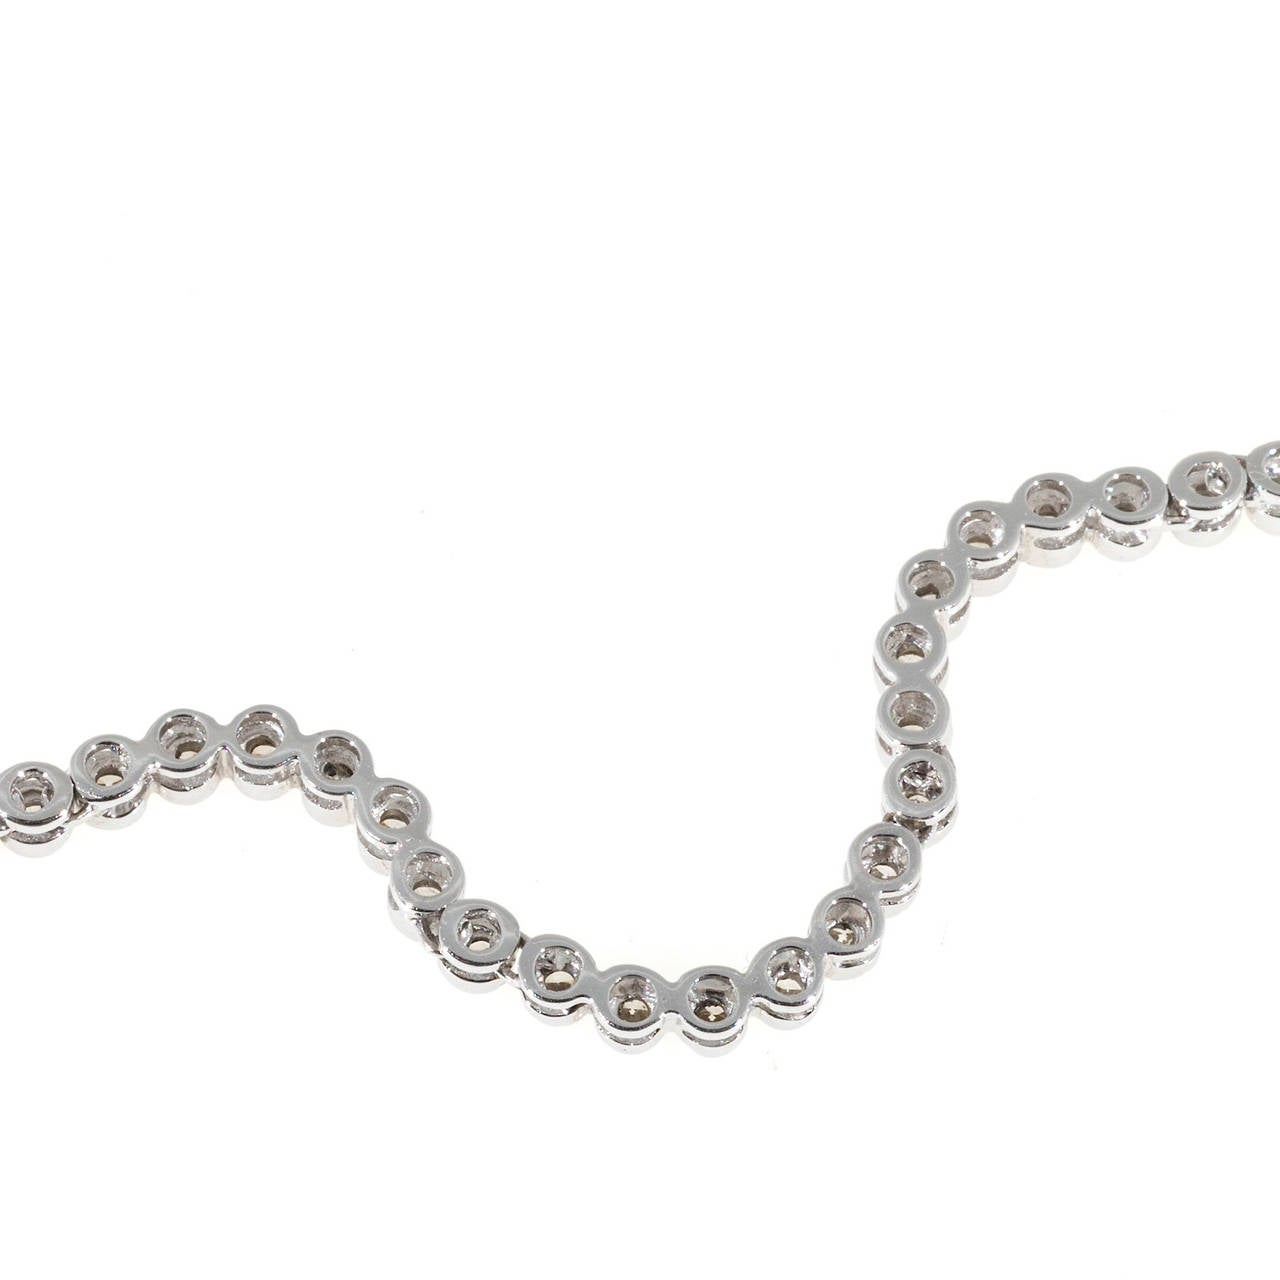 Wonderful simple but different swirl link tube set 18k white gold diamond necklace with hinged links and sparkly white full cut tube set diamonds. Built in catch and figure 8 safety. Circa 1980.